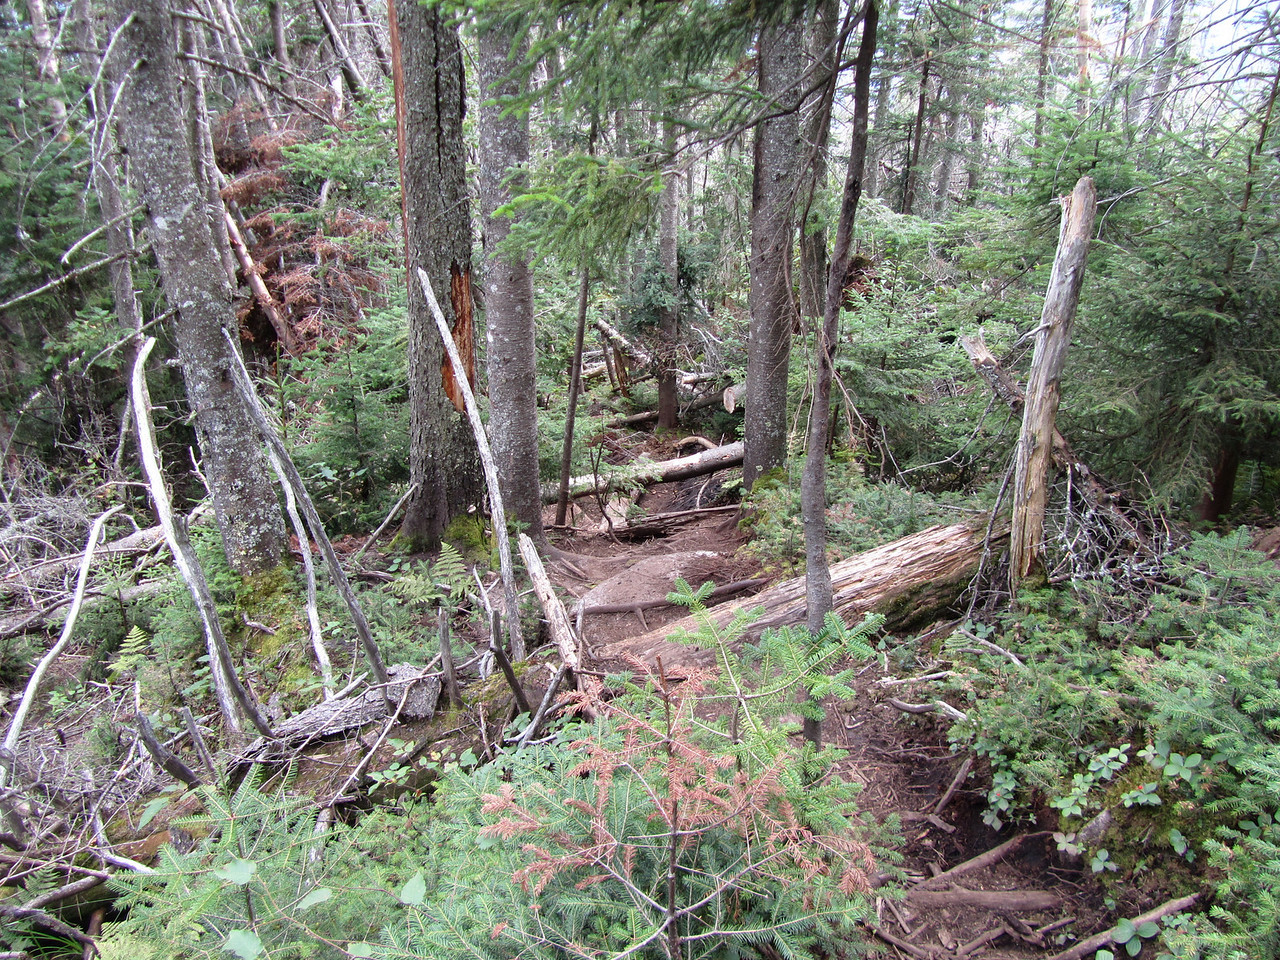 This is what they call an unmanned trail, so everything that blows over the trail stays there.